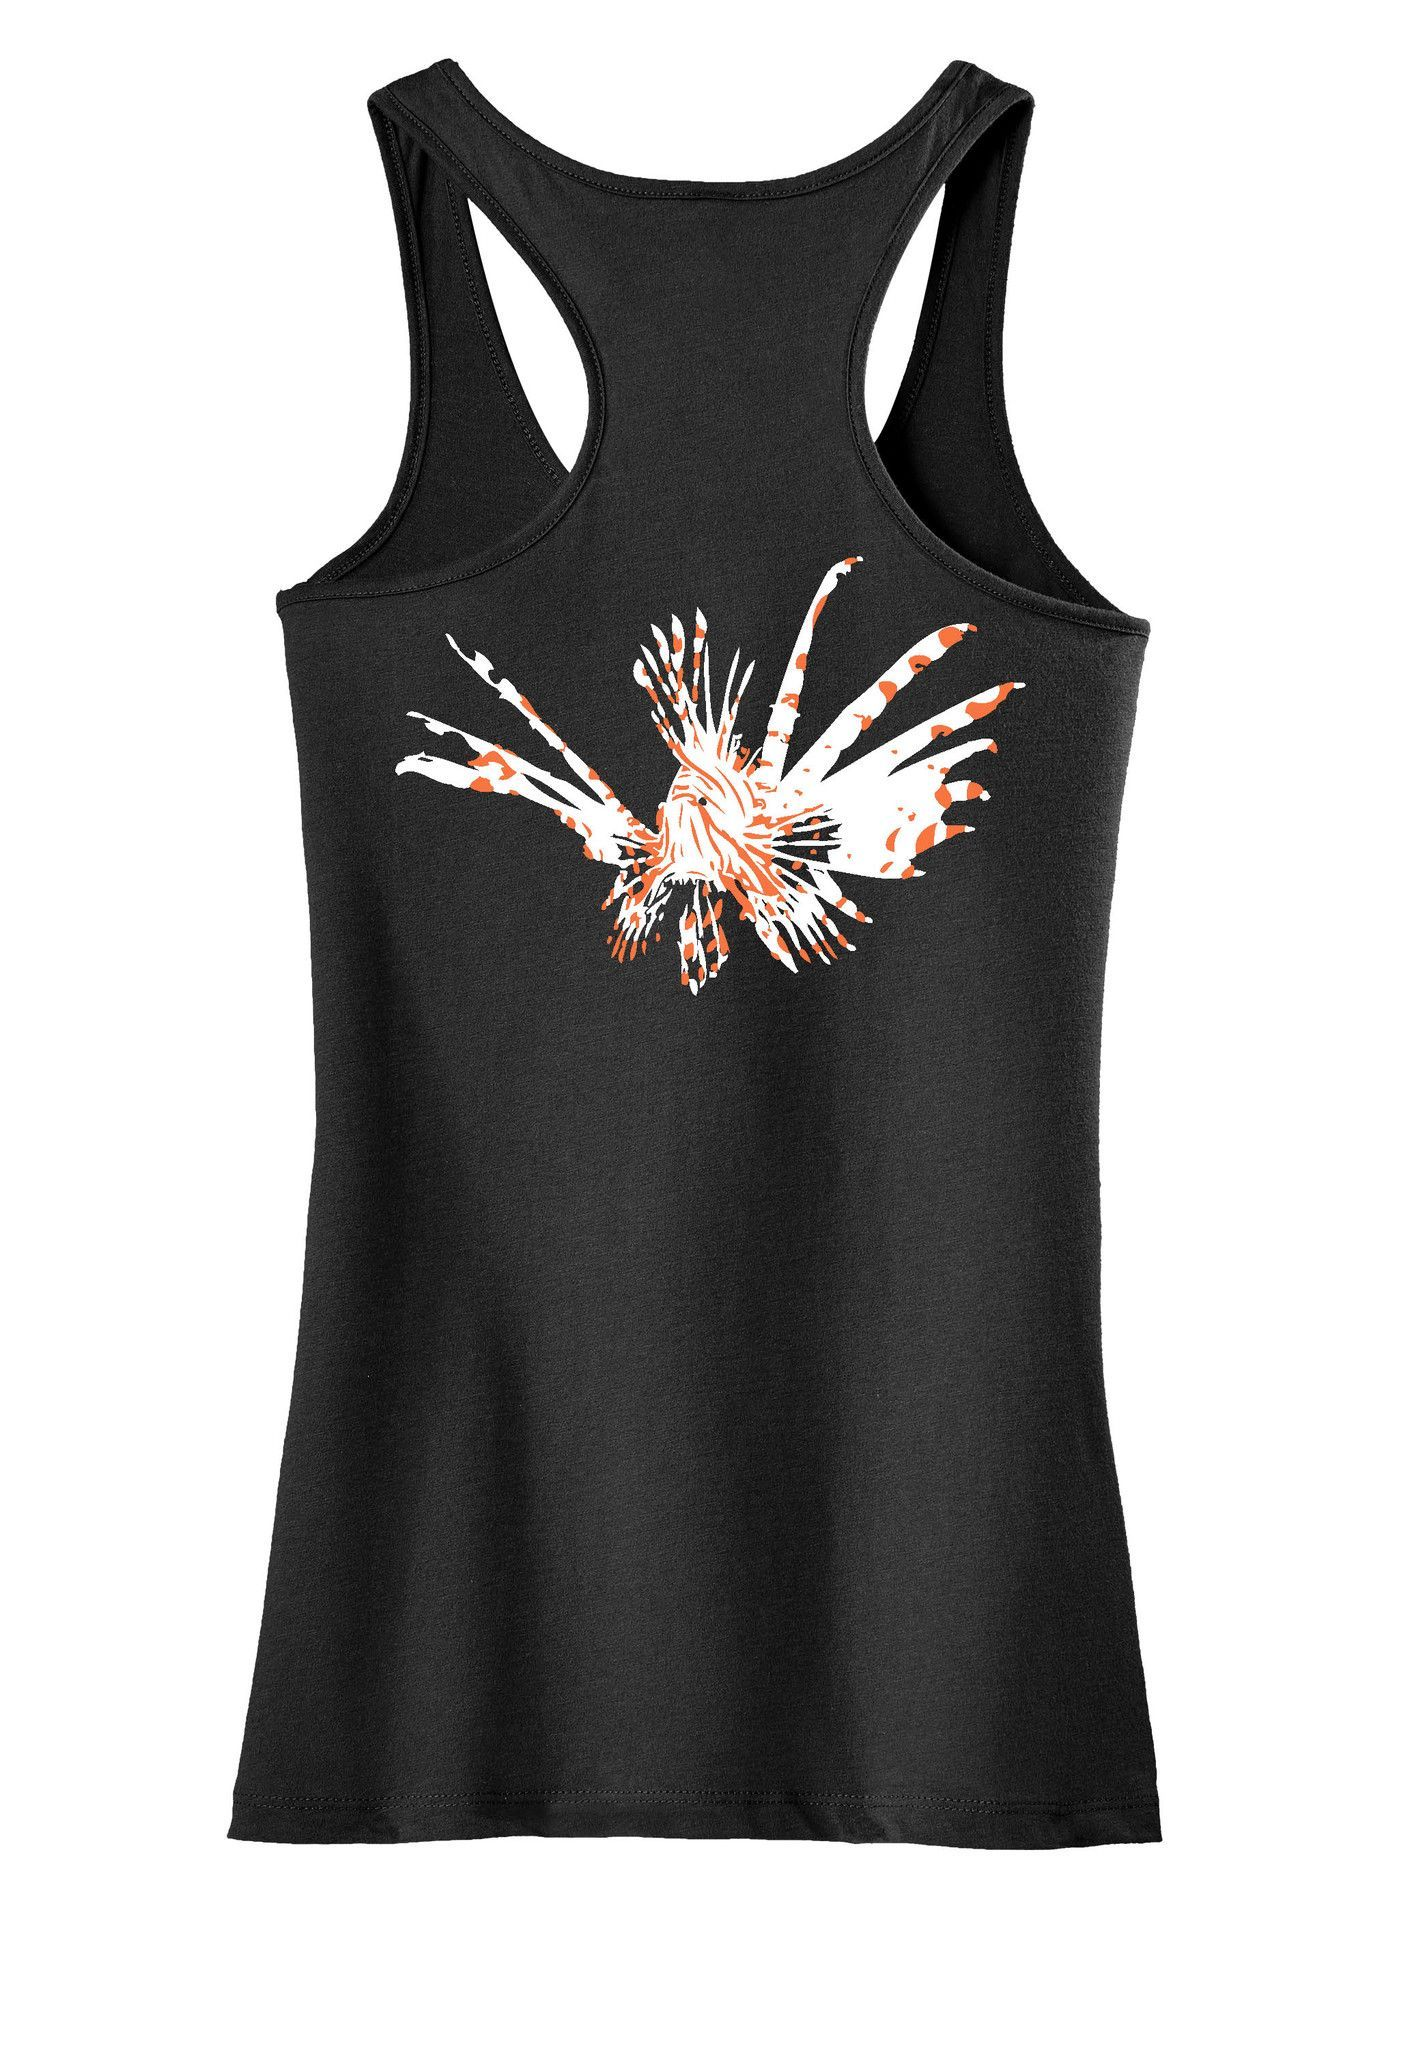 e07f734502368 Ladies Lionfish Racerback Tanks | Products | Fishing shorts ...